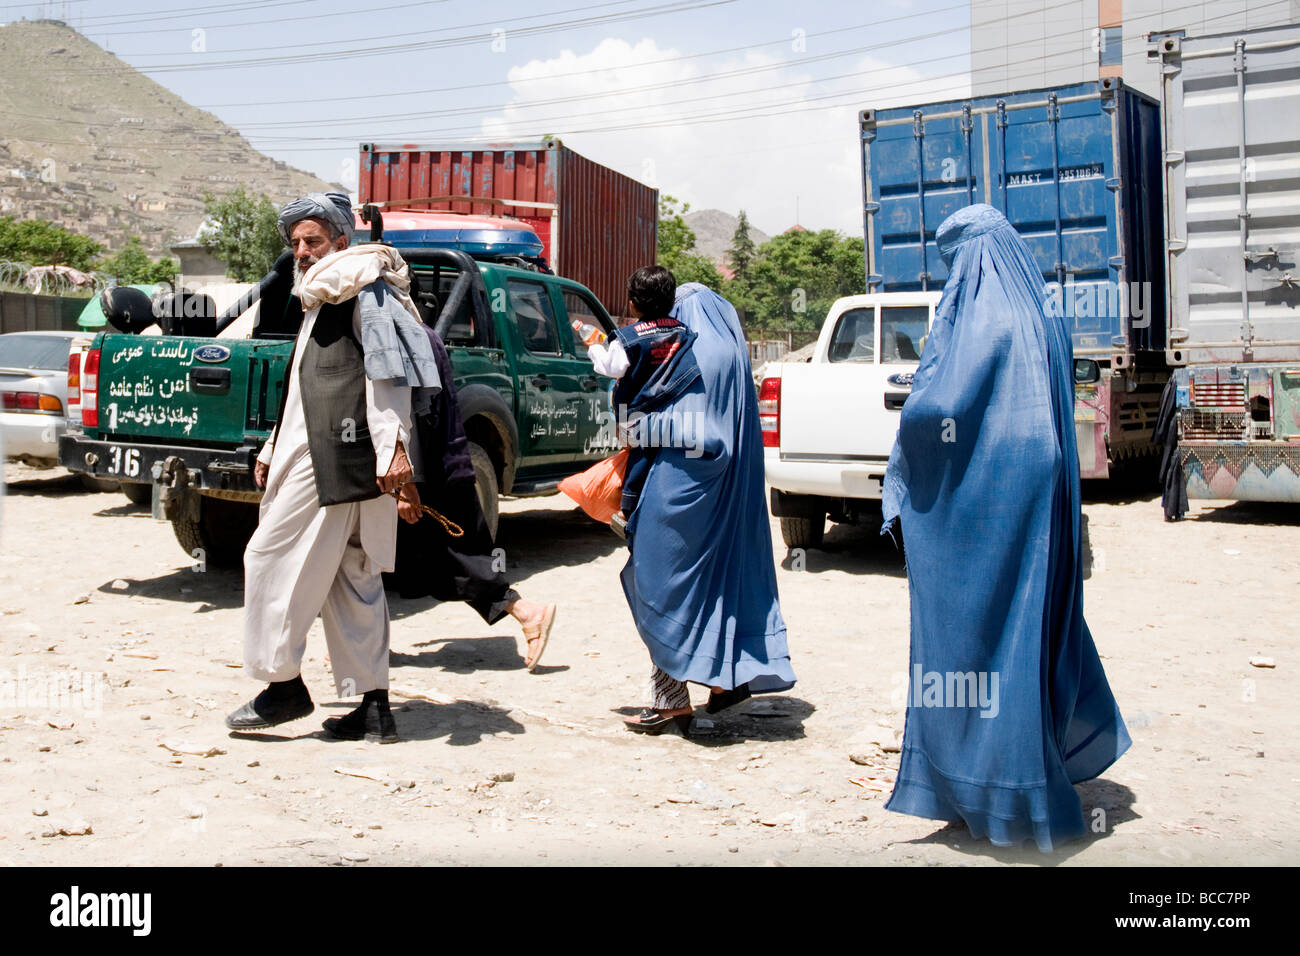 Crossing a Kabul street, a family including women in concealing burqas, risks the hazardous traffic - Stock Image